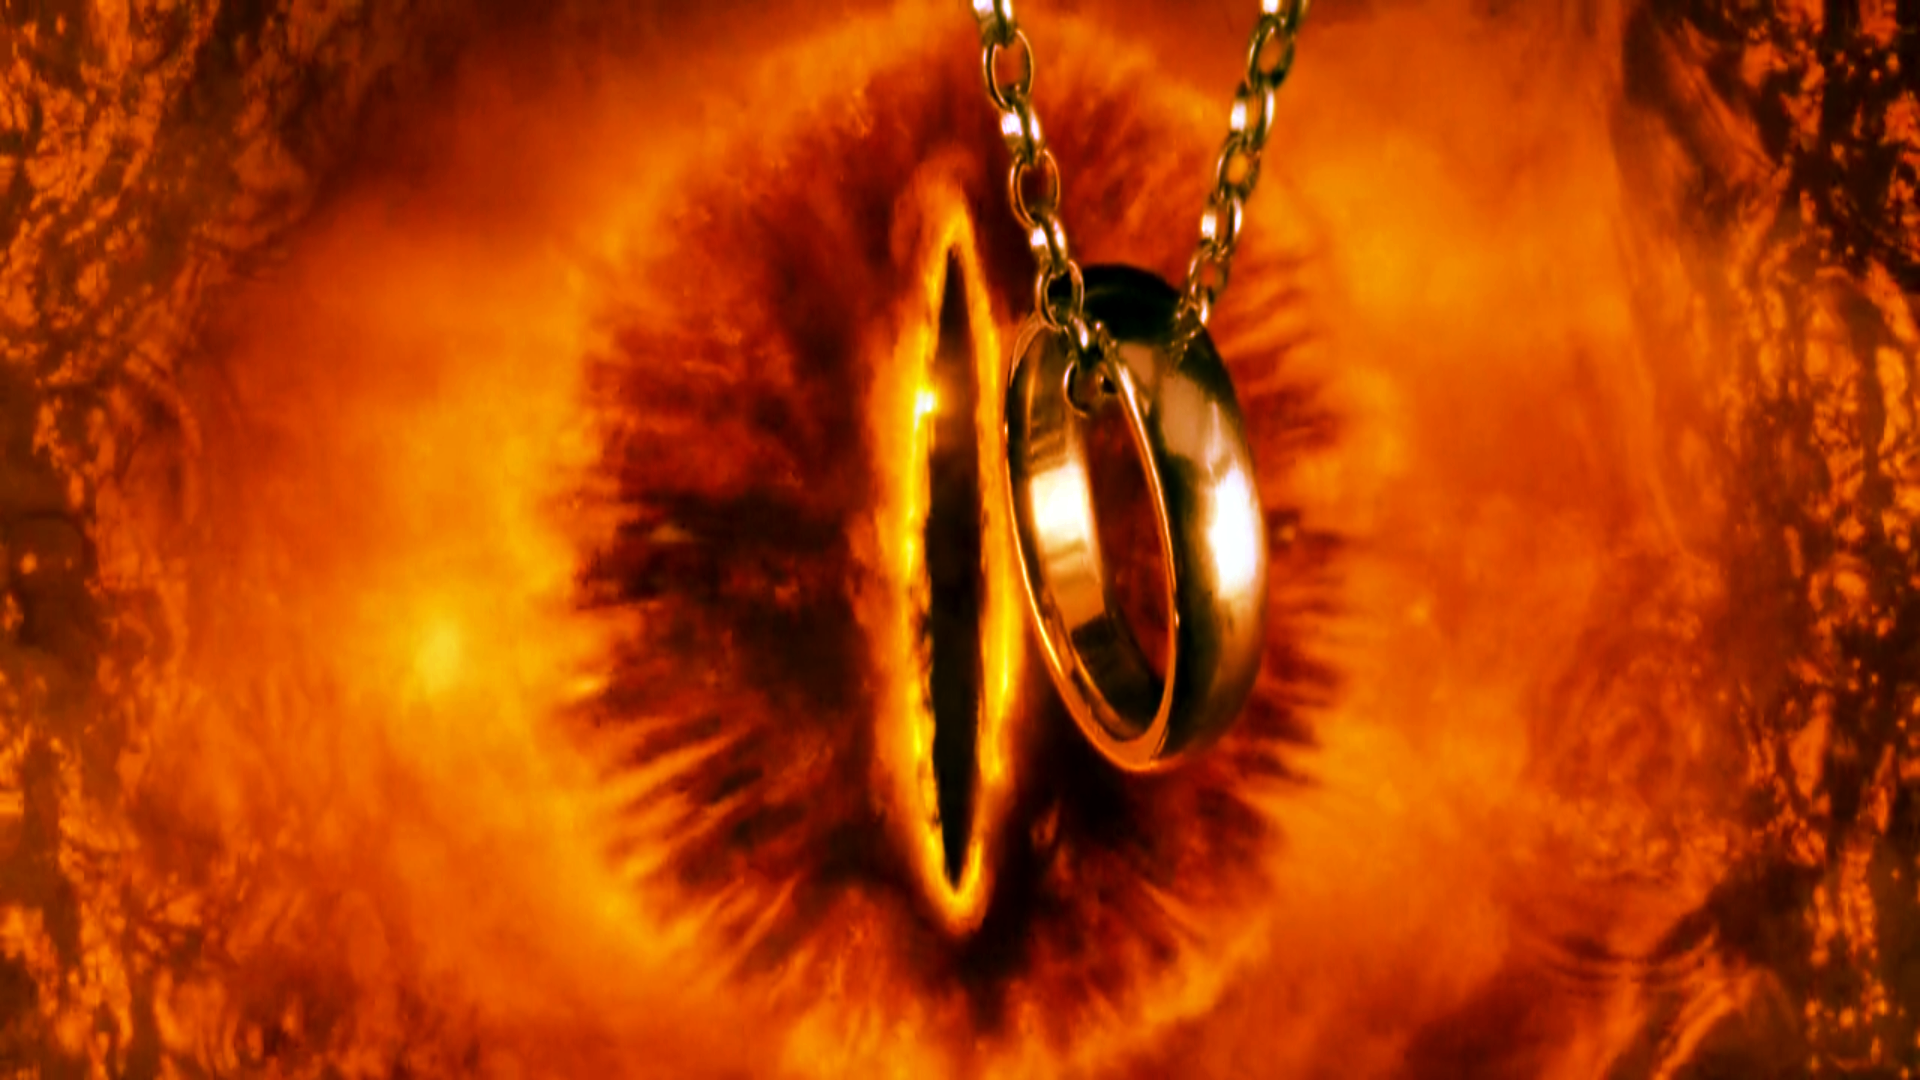 Lord Of The Rings Wallpapers In 2020 Fellowship Of The Ring